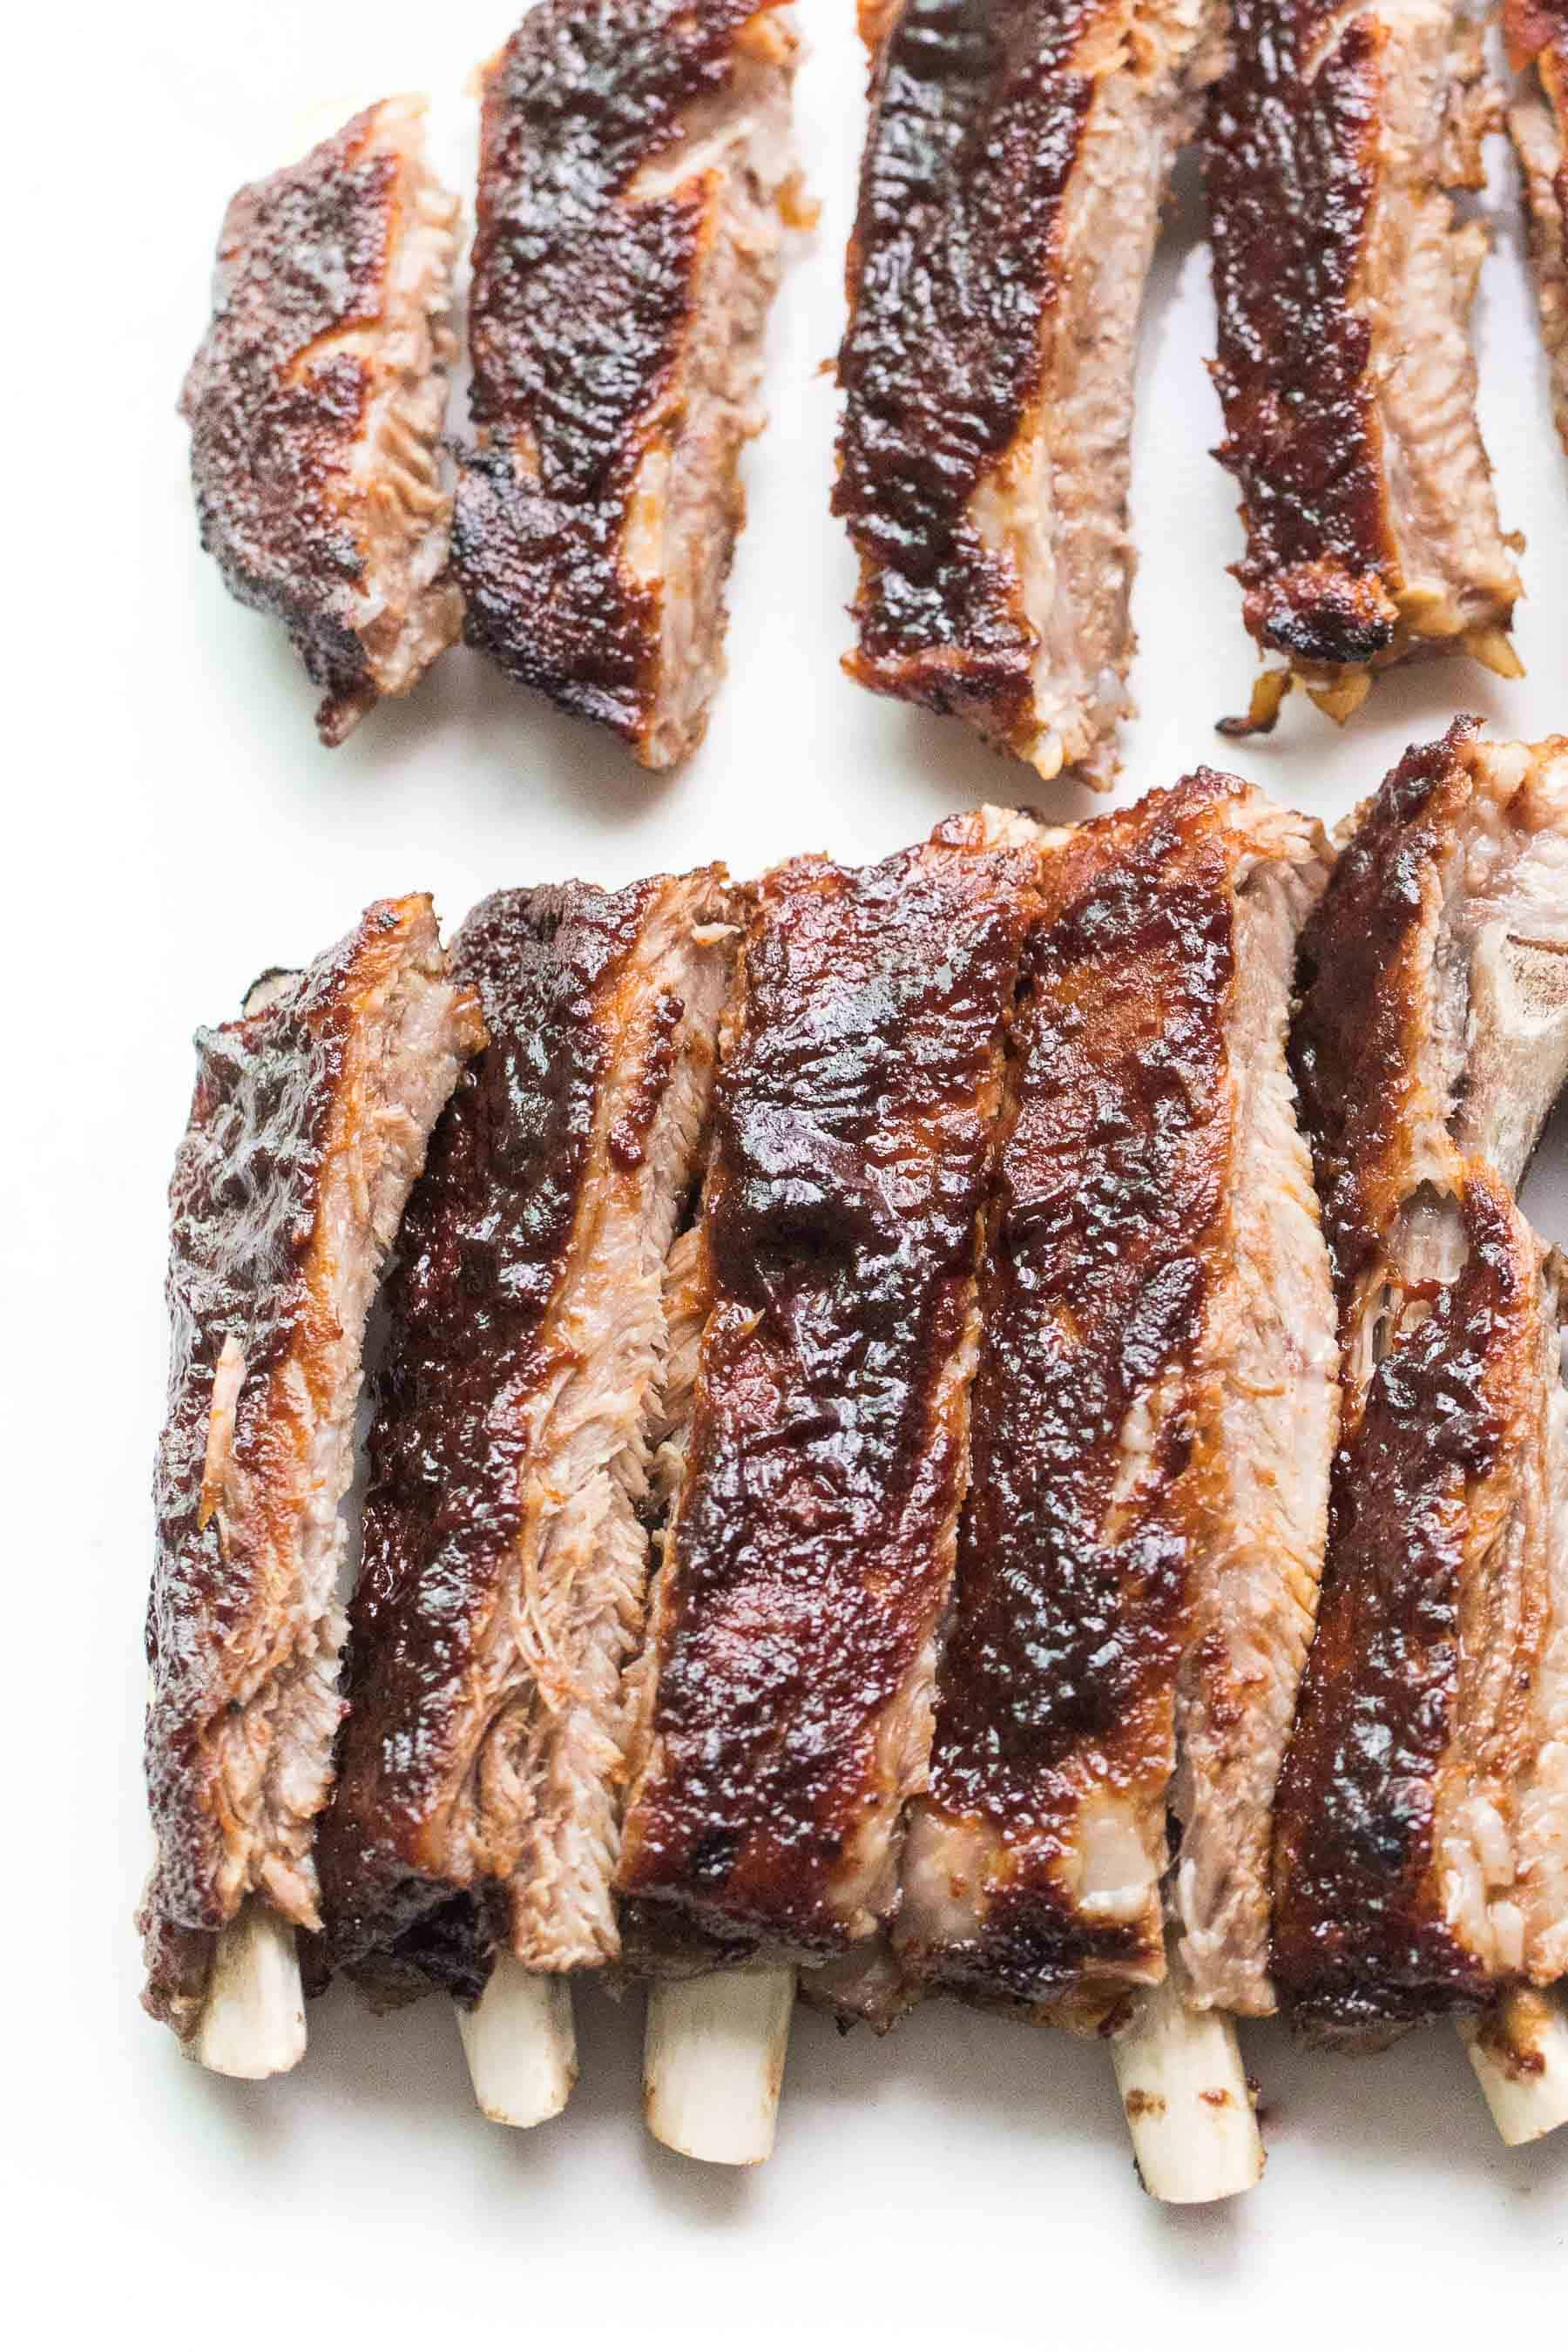 Ribs on a white background